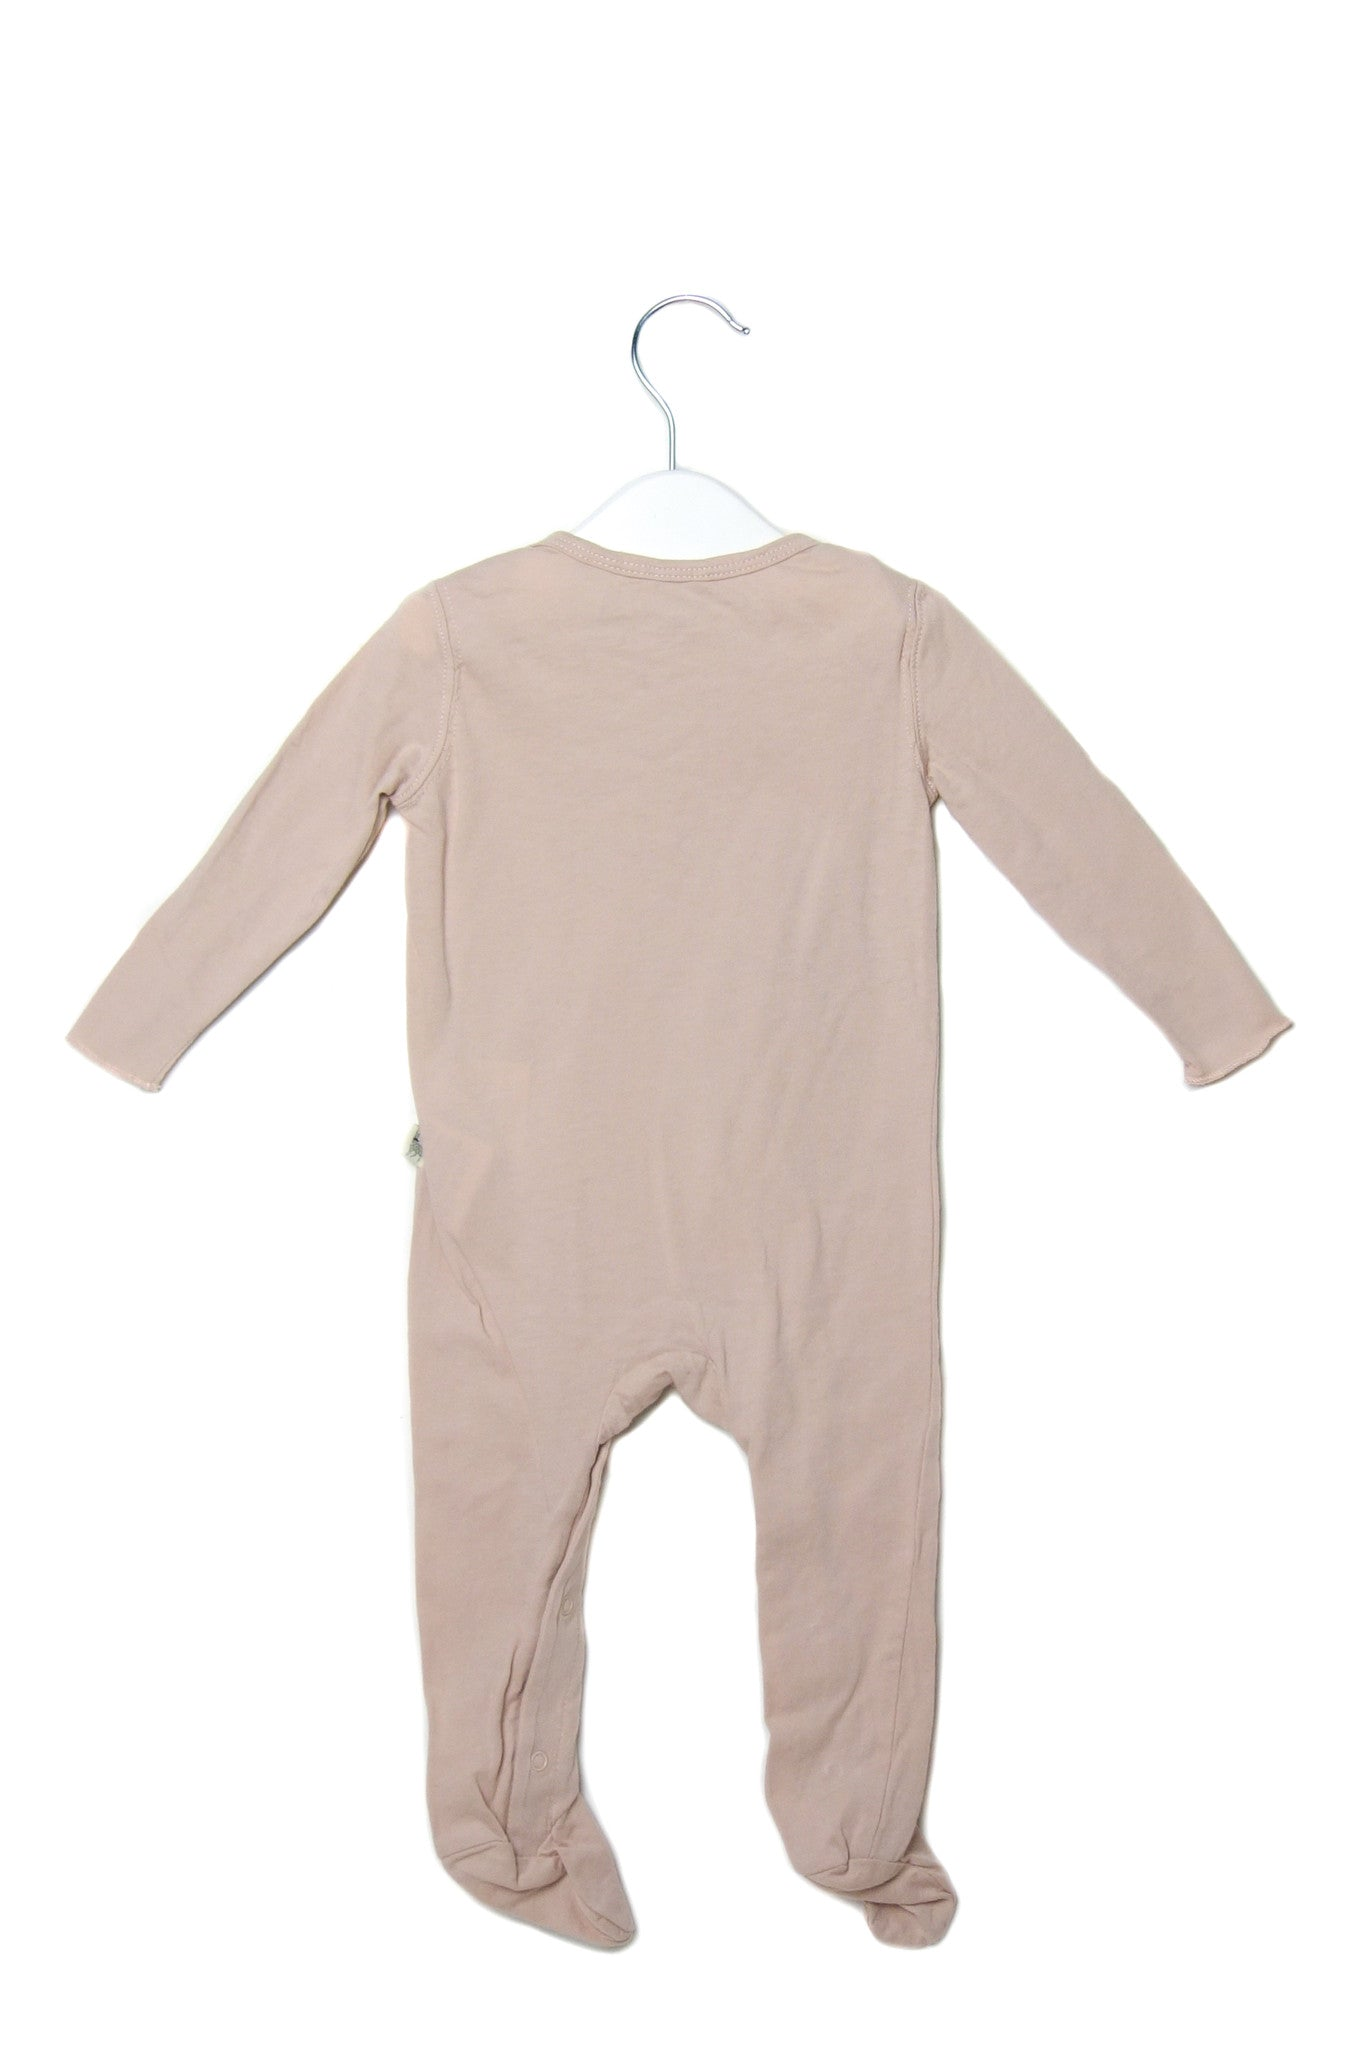 10002112 Stella McCartney Baby~Jumpsuit 6M at Retykle